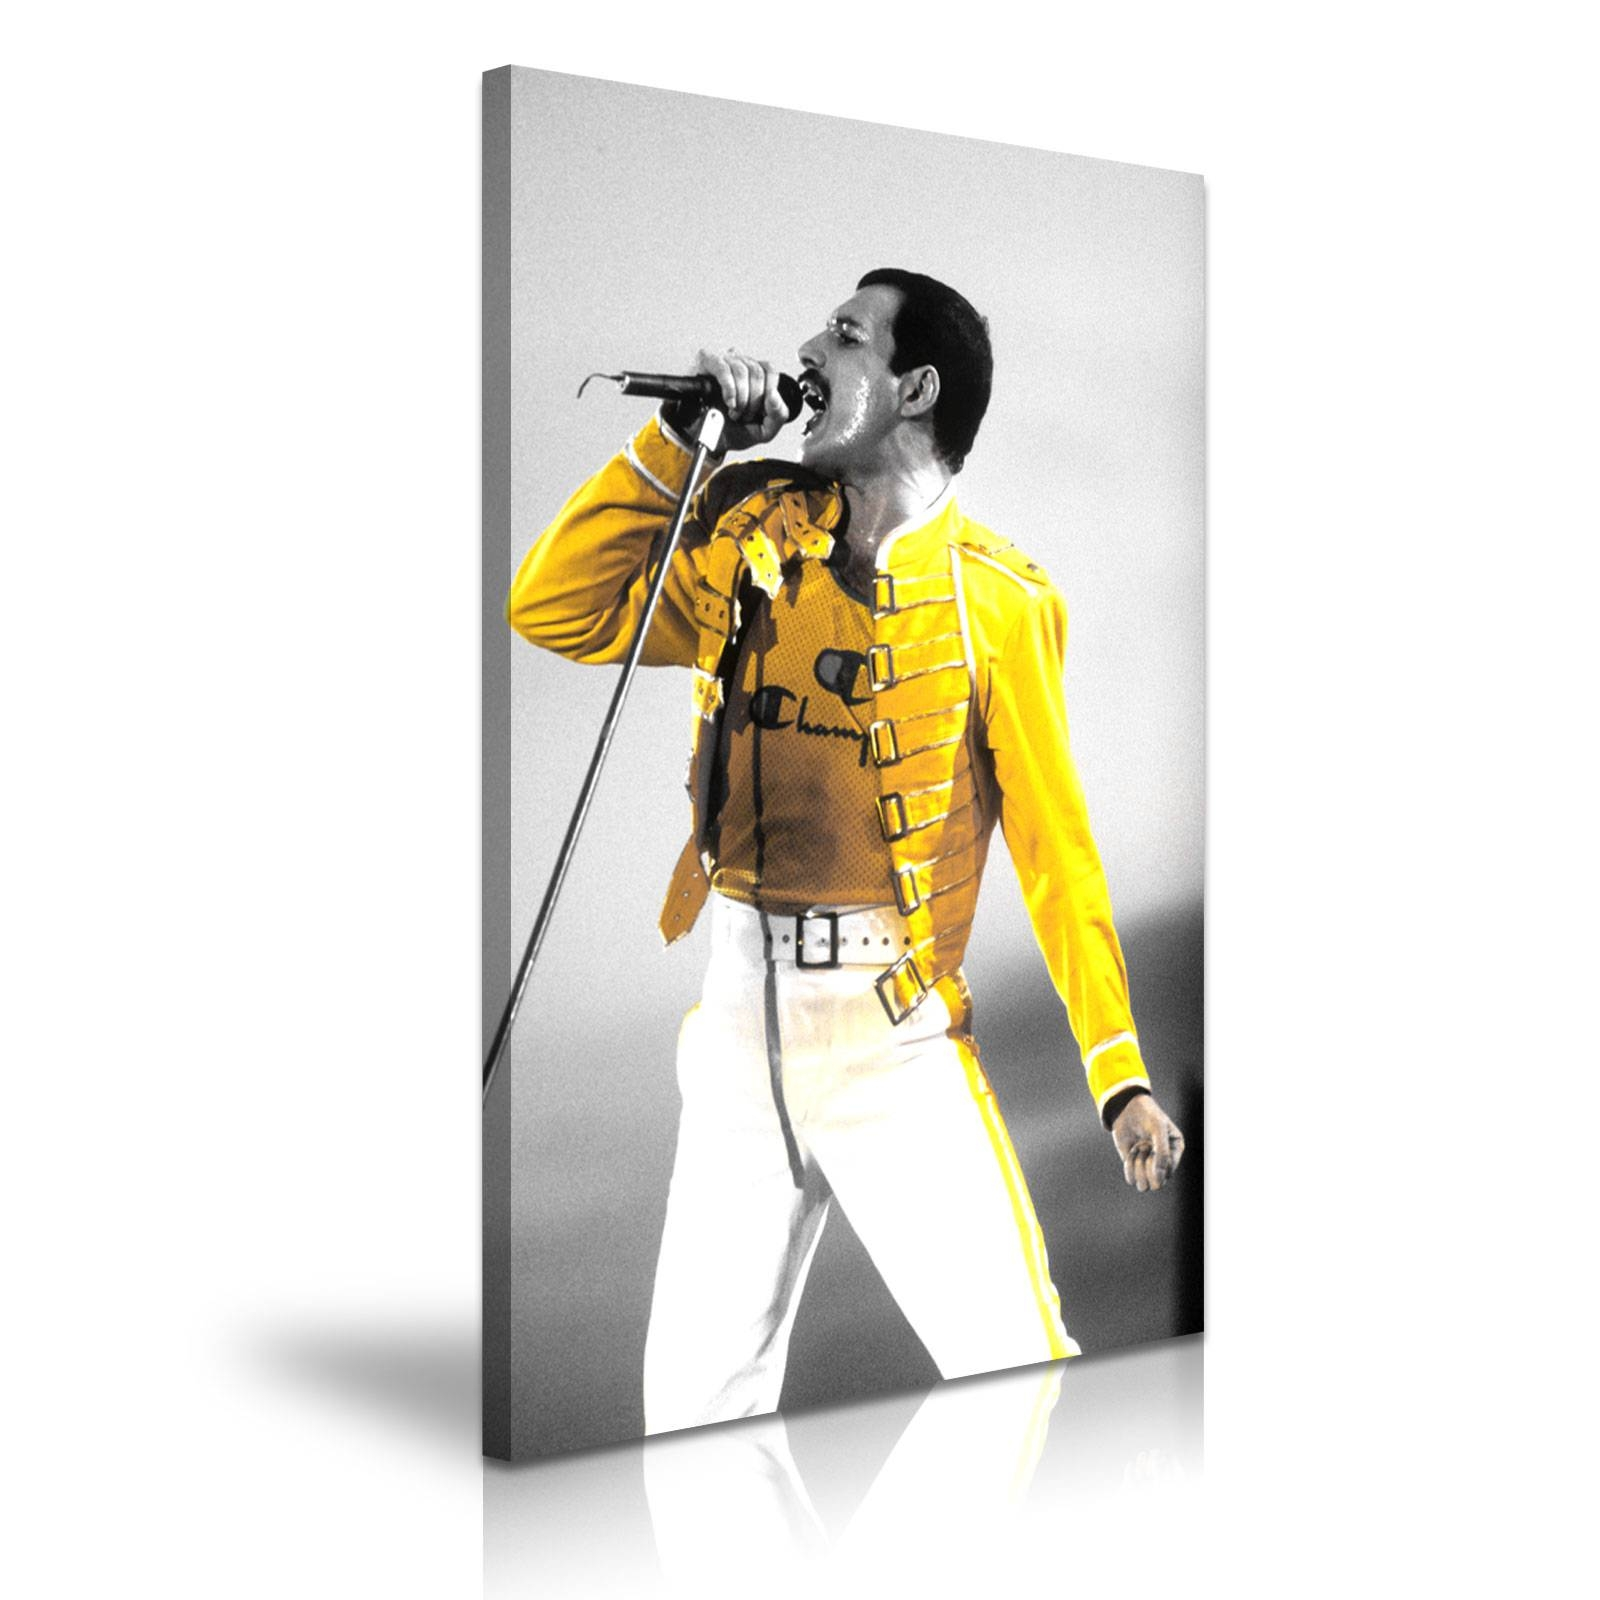 Music & Dance Freddie Mercury Queen Canvas Framed Print Wall Art Within Current Freddie Mercury Wall Art (View 15 of 15)